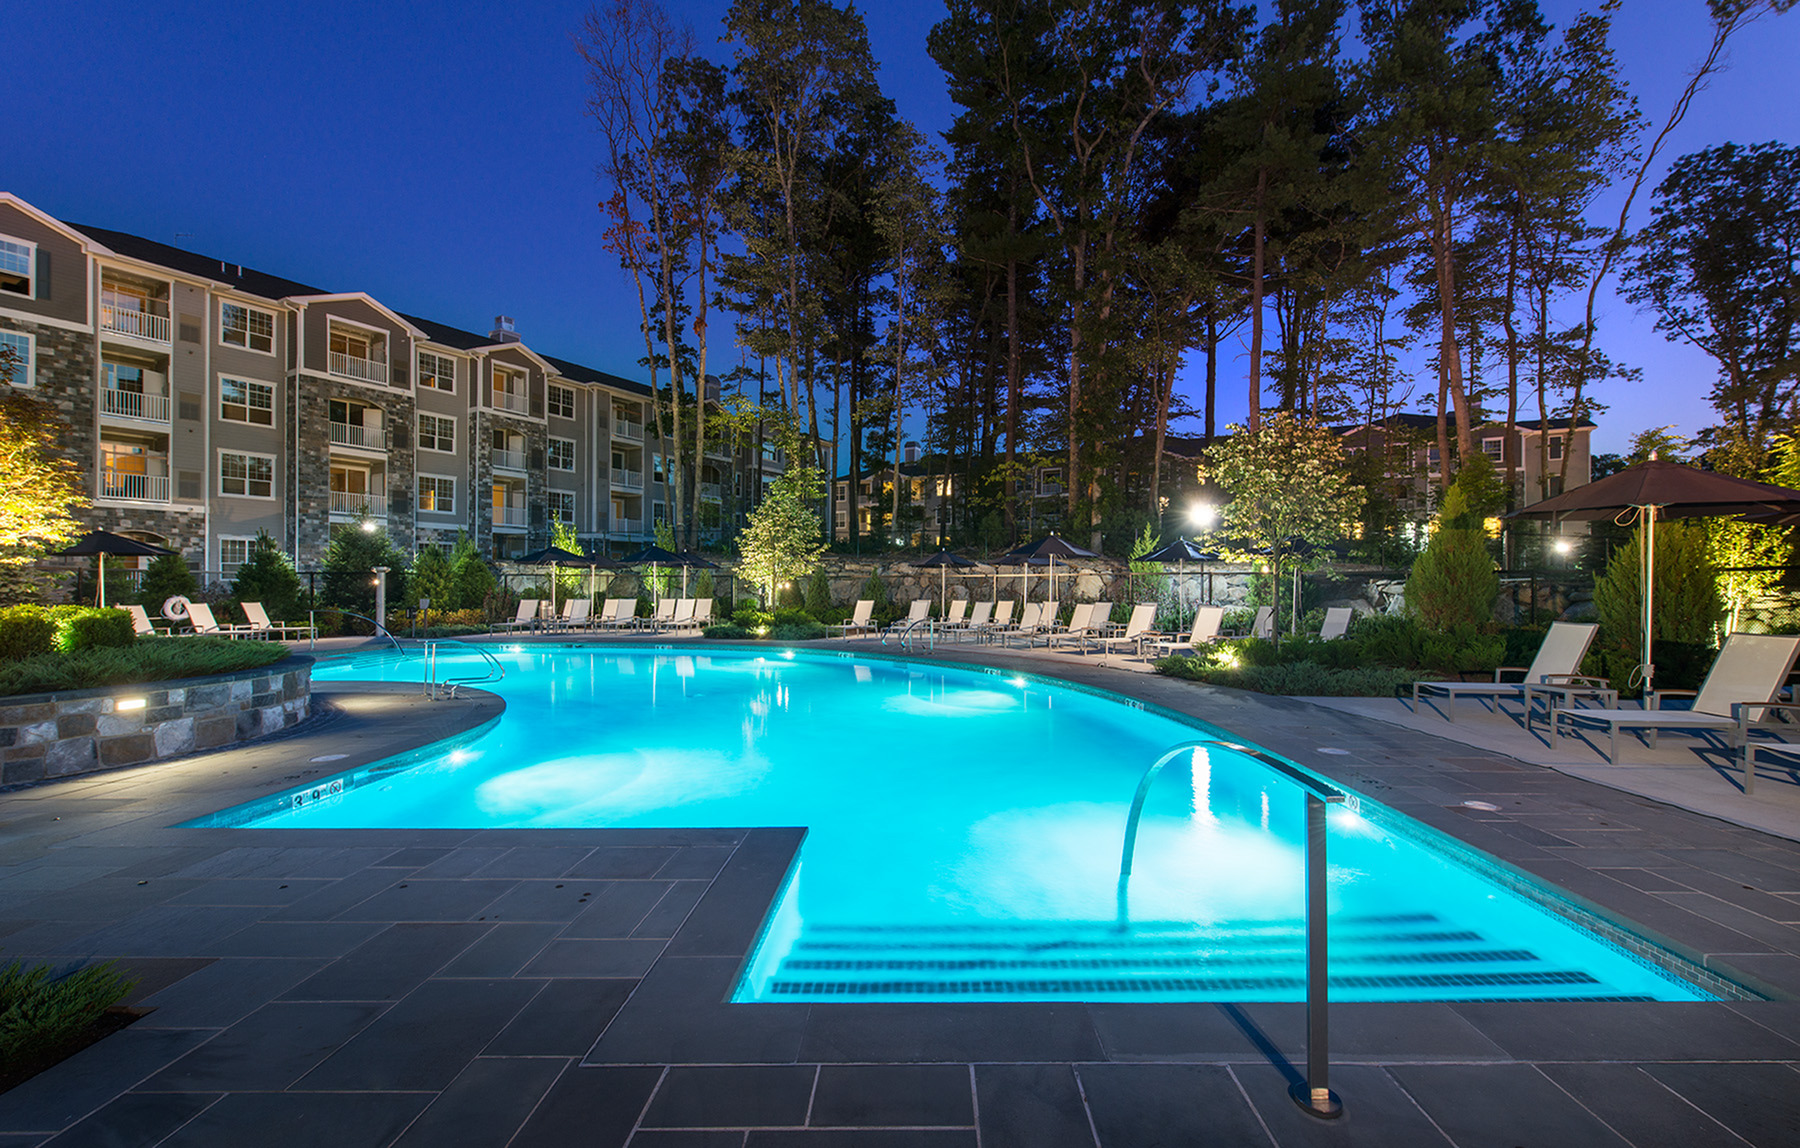 Image of Lavish courtyard with resort-style pool and conversational fire-pit for Hanover Foxborough